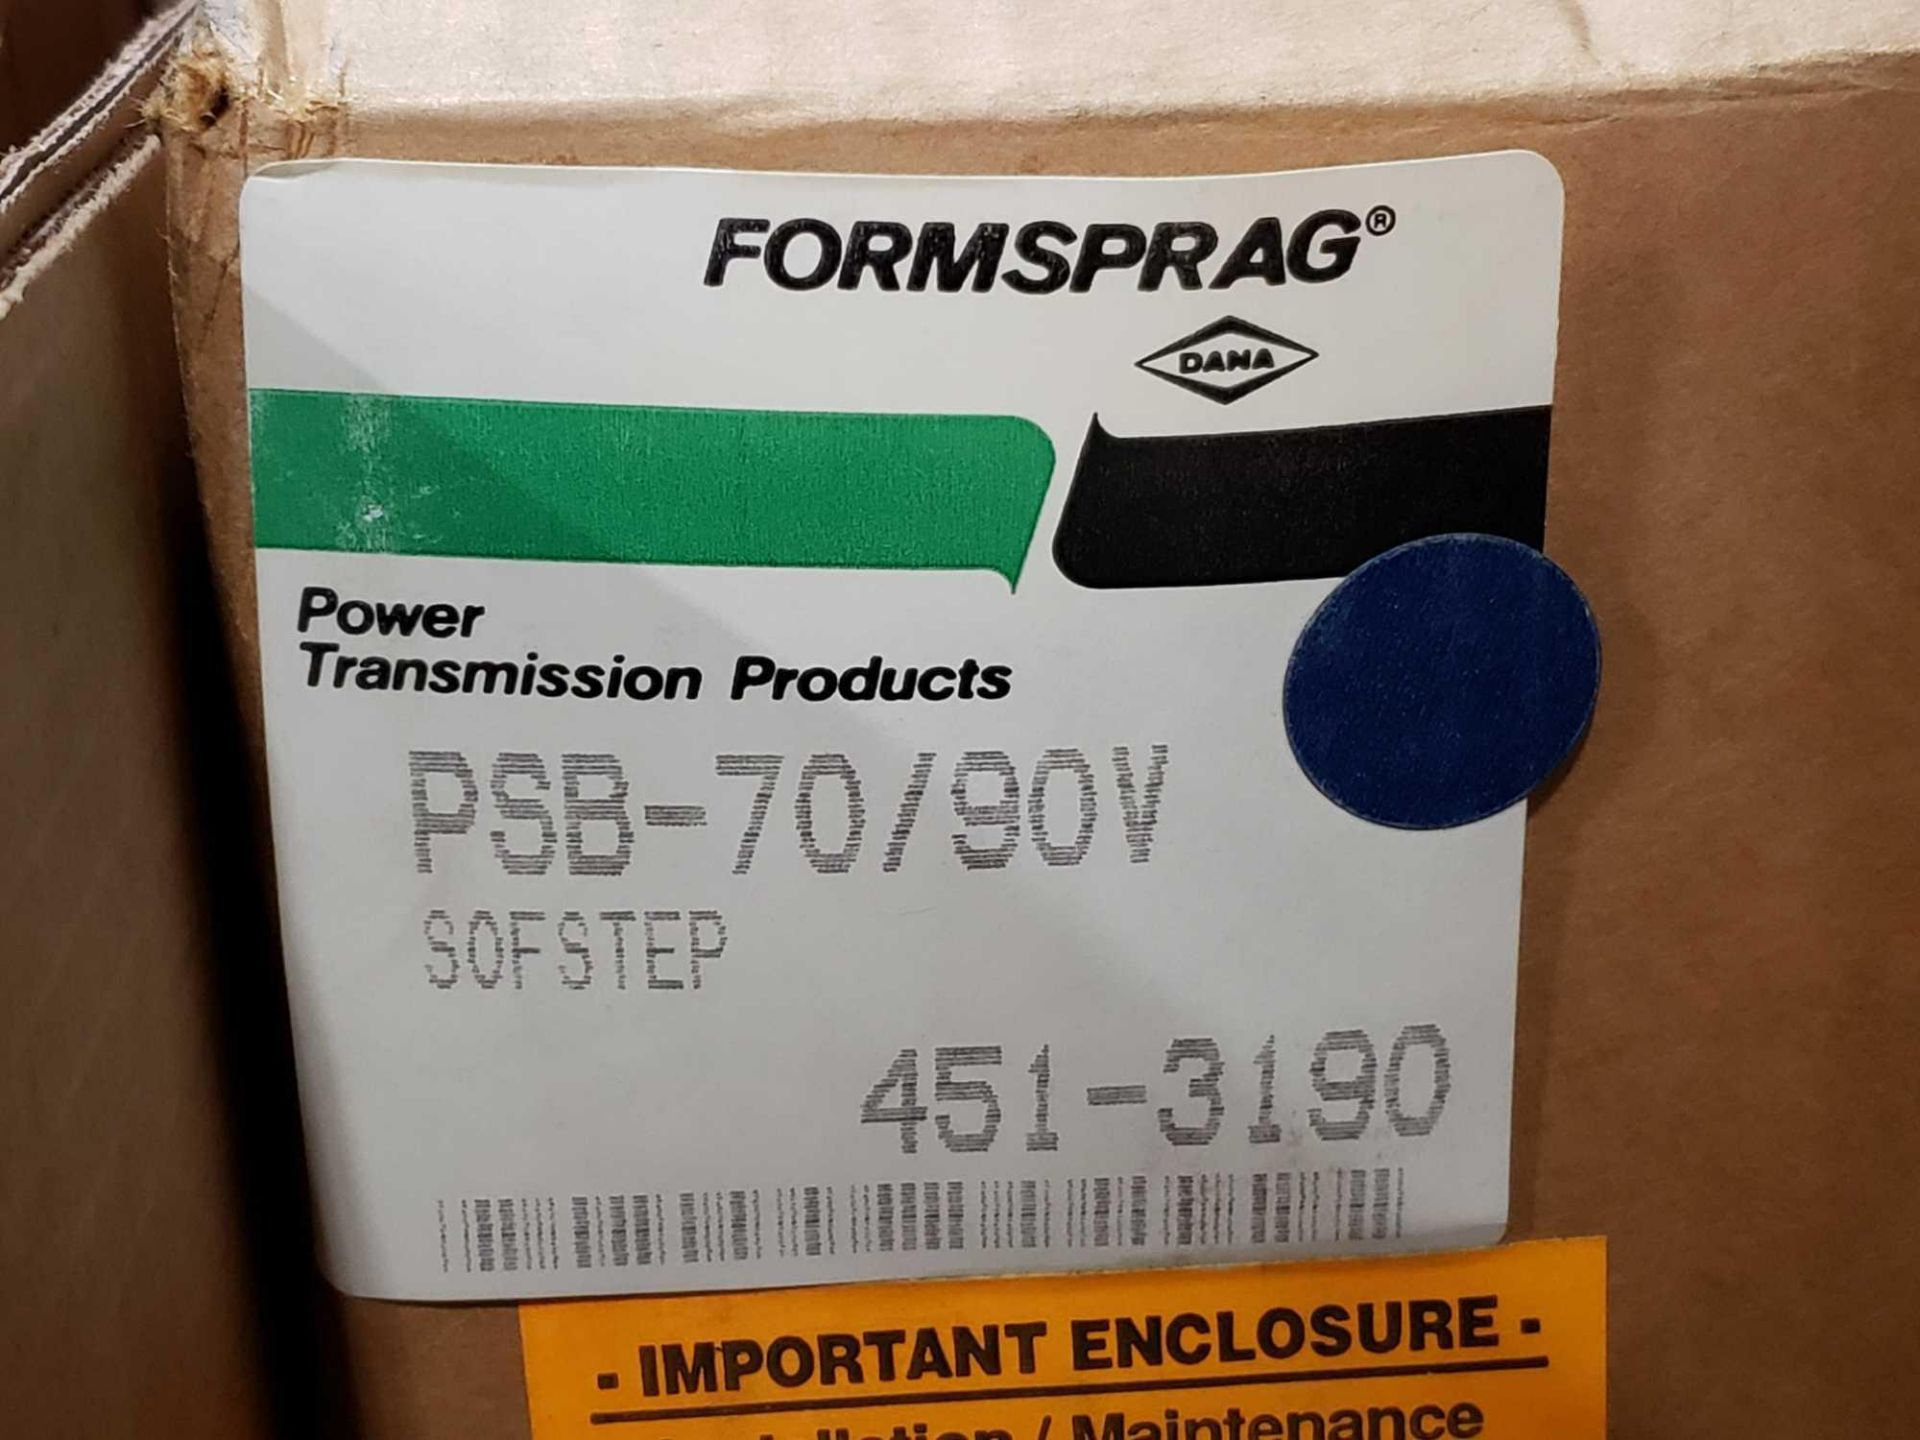 Lot 4 - Formsprag Magpowr sofstep model PSB-70/90V magnetic partical clutch brake. New in box. This item can